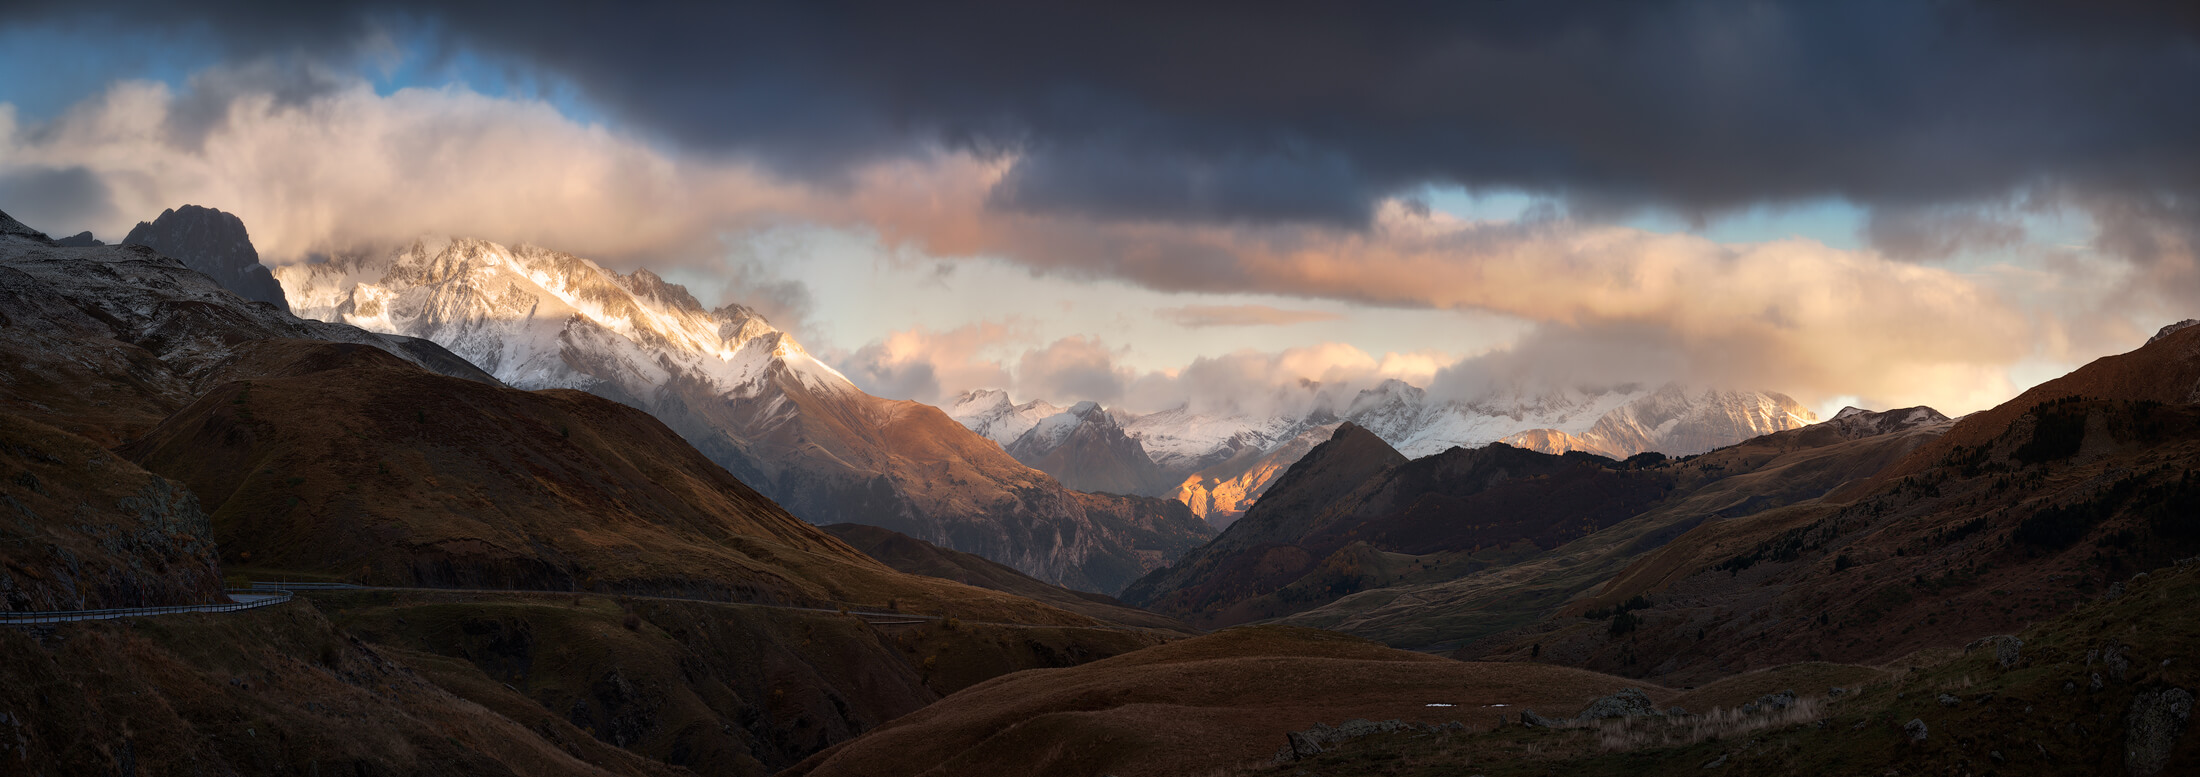 Panoramic of the pyrenees